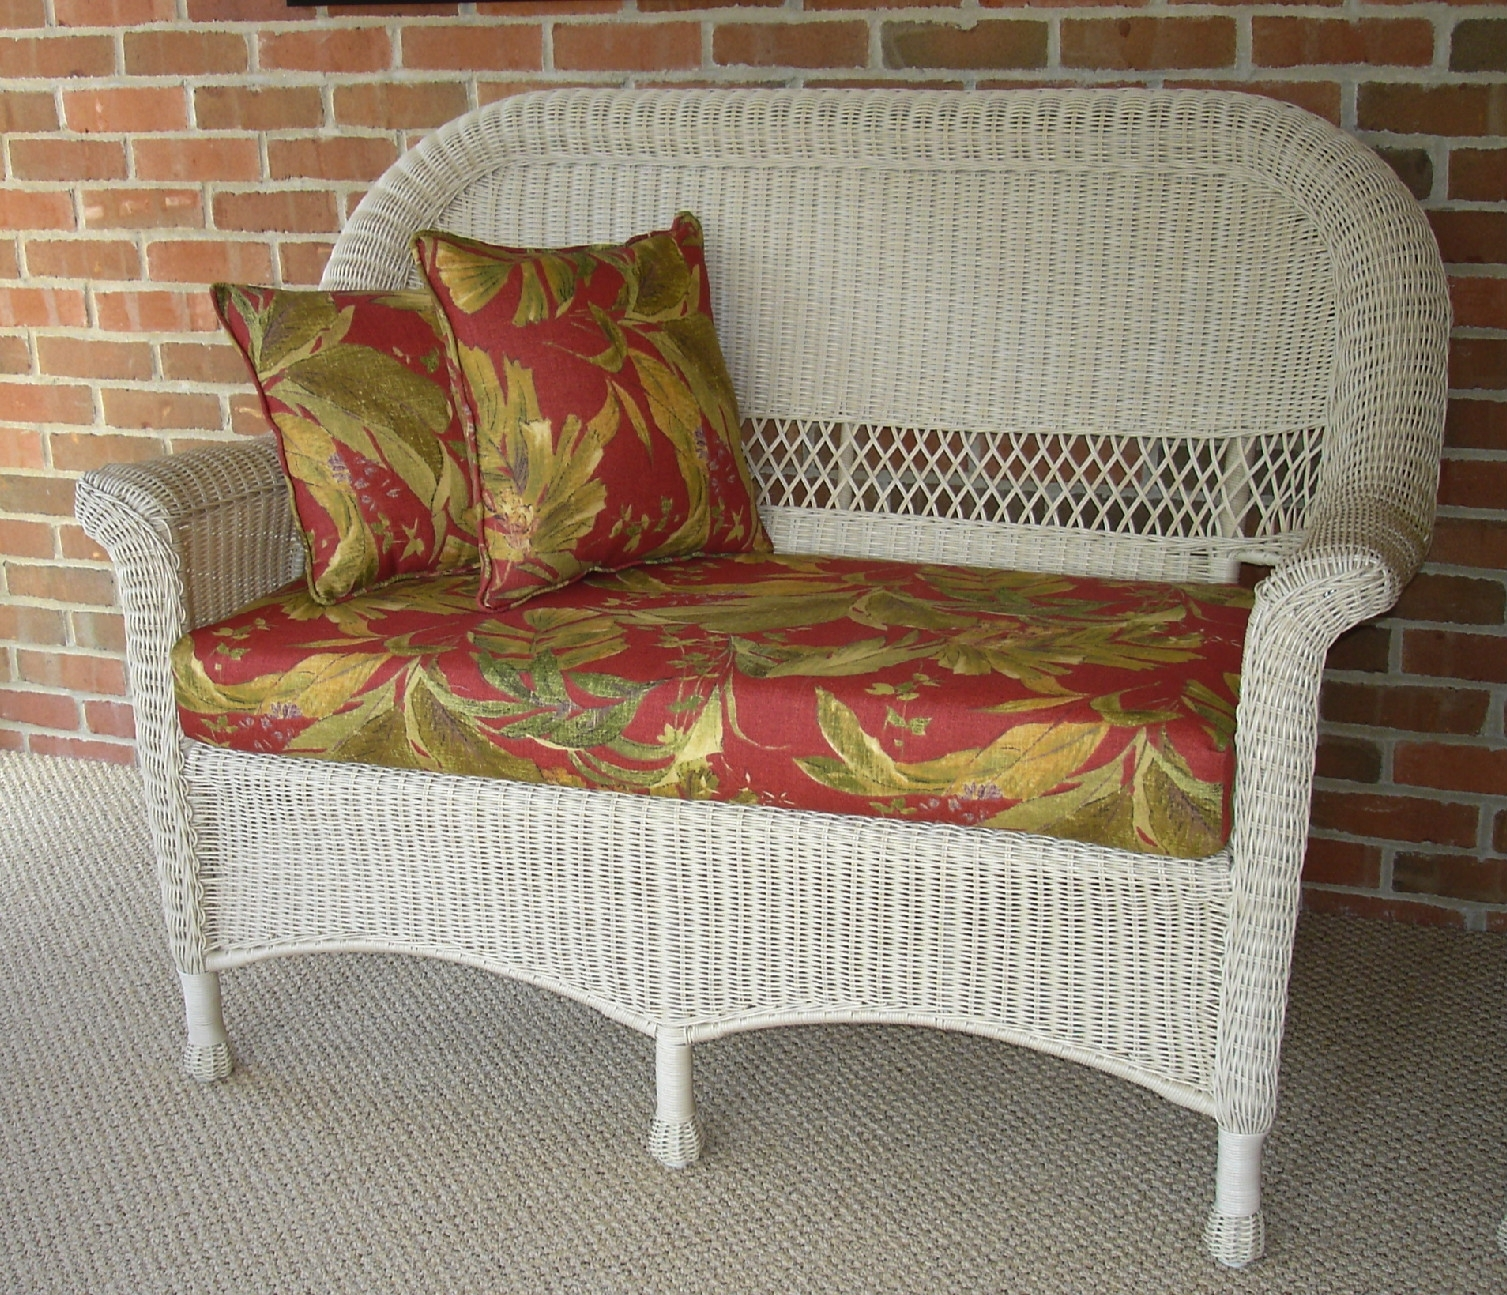 Great For Wicker Seat Cushions The Homy Design Pertaining To Outdoor Wicker Seat Cushions Very Elegant Outdoor Wicker Seat Cushions